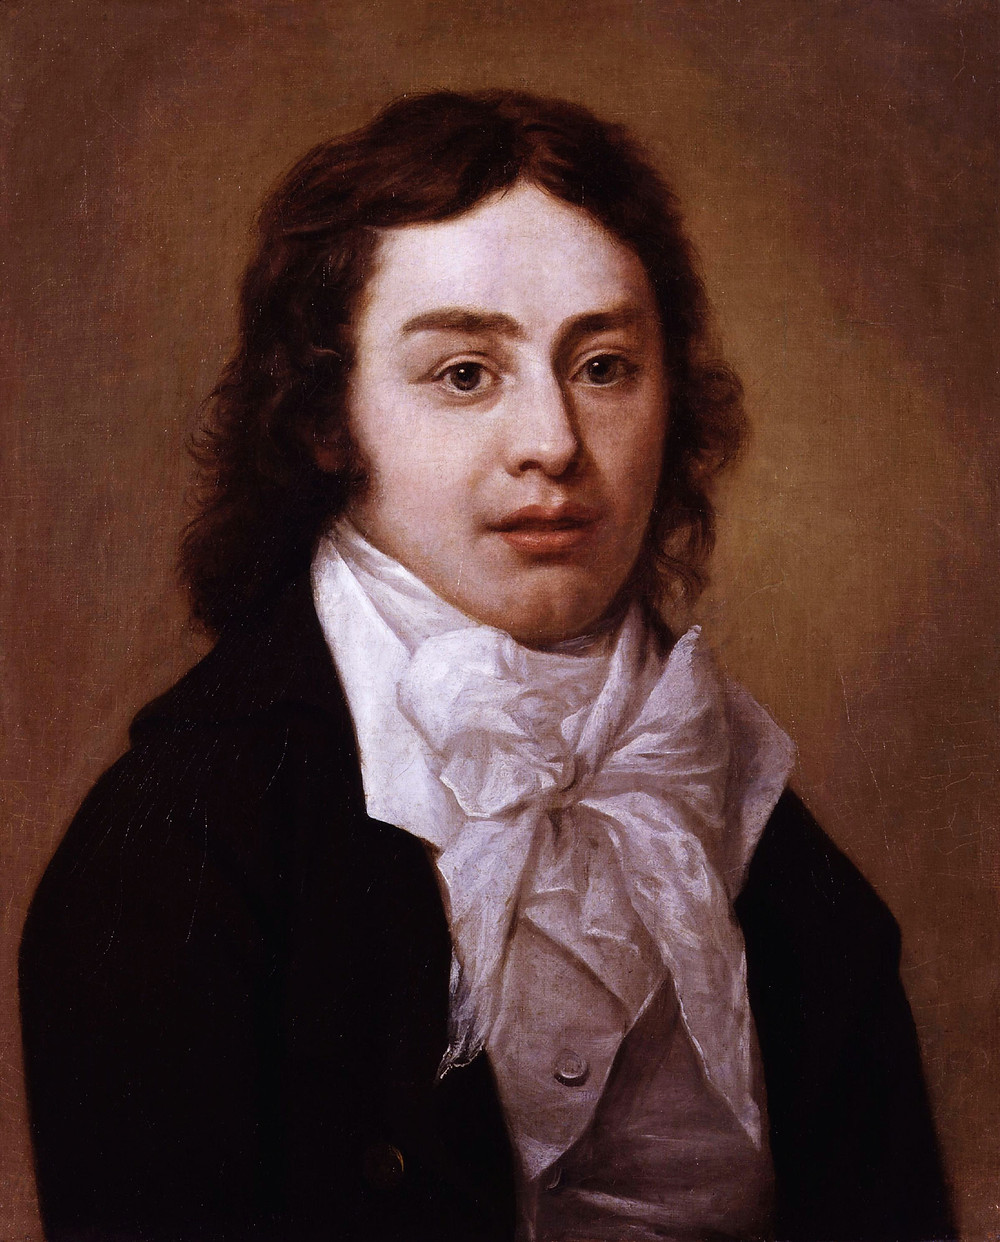 SAMUEL TAYLOR COLERIDGE(21 October 1772 – 25 July 1834)